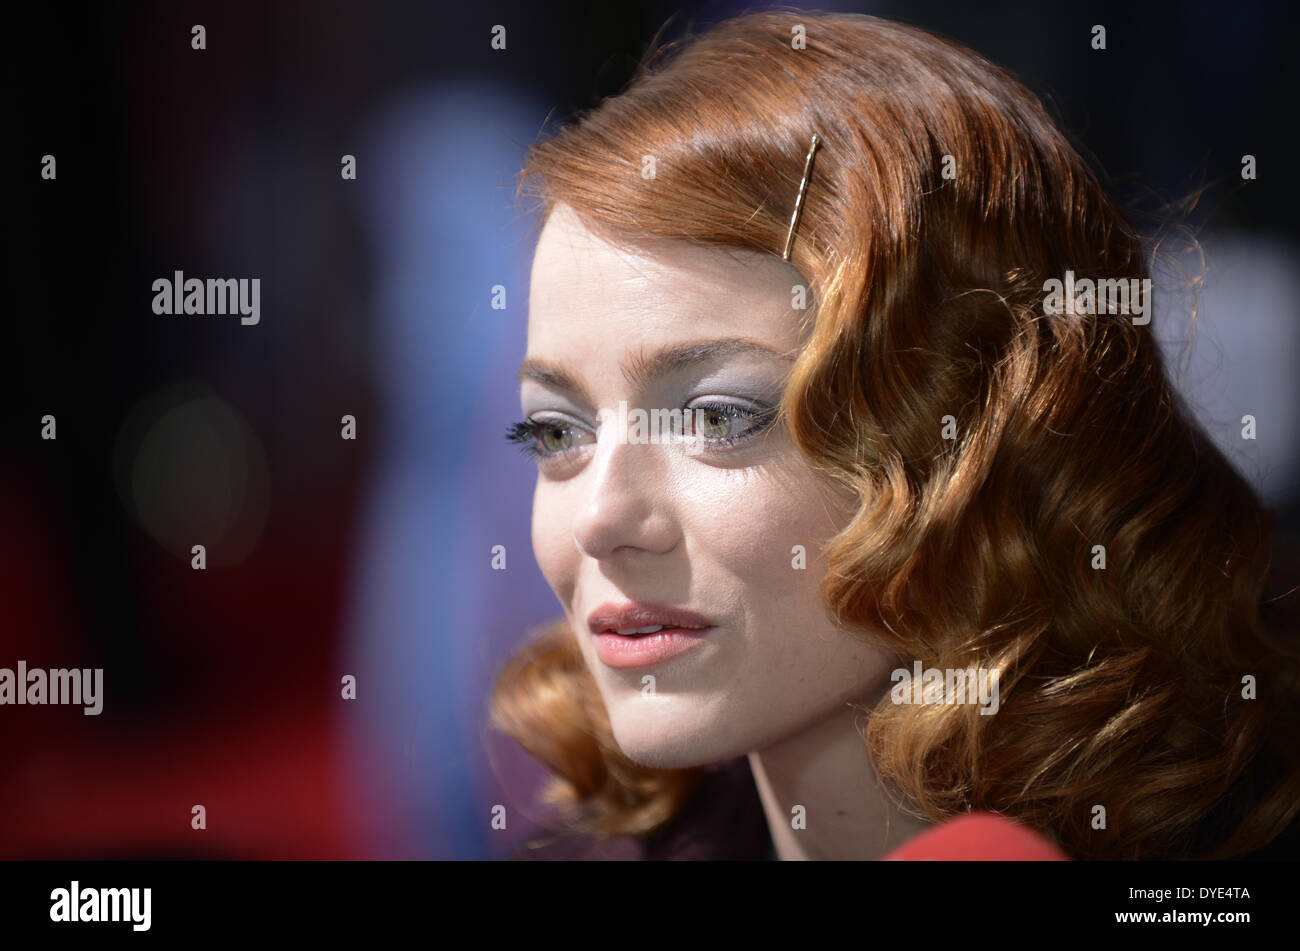 BERLIN, GERMANY, 15th April, 2014. Emma Stone attends the 'The Amazing Spider-Man 2' Premiere in Sony Centre, Potsdamer Platz on April 15th, 2014 in Berlin, Germany. Credit:  Janne Tervonen/Alamy Live News - Stock Image